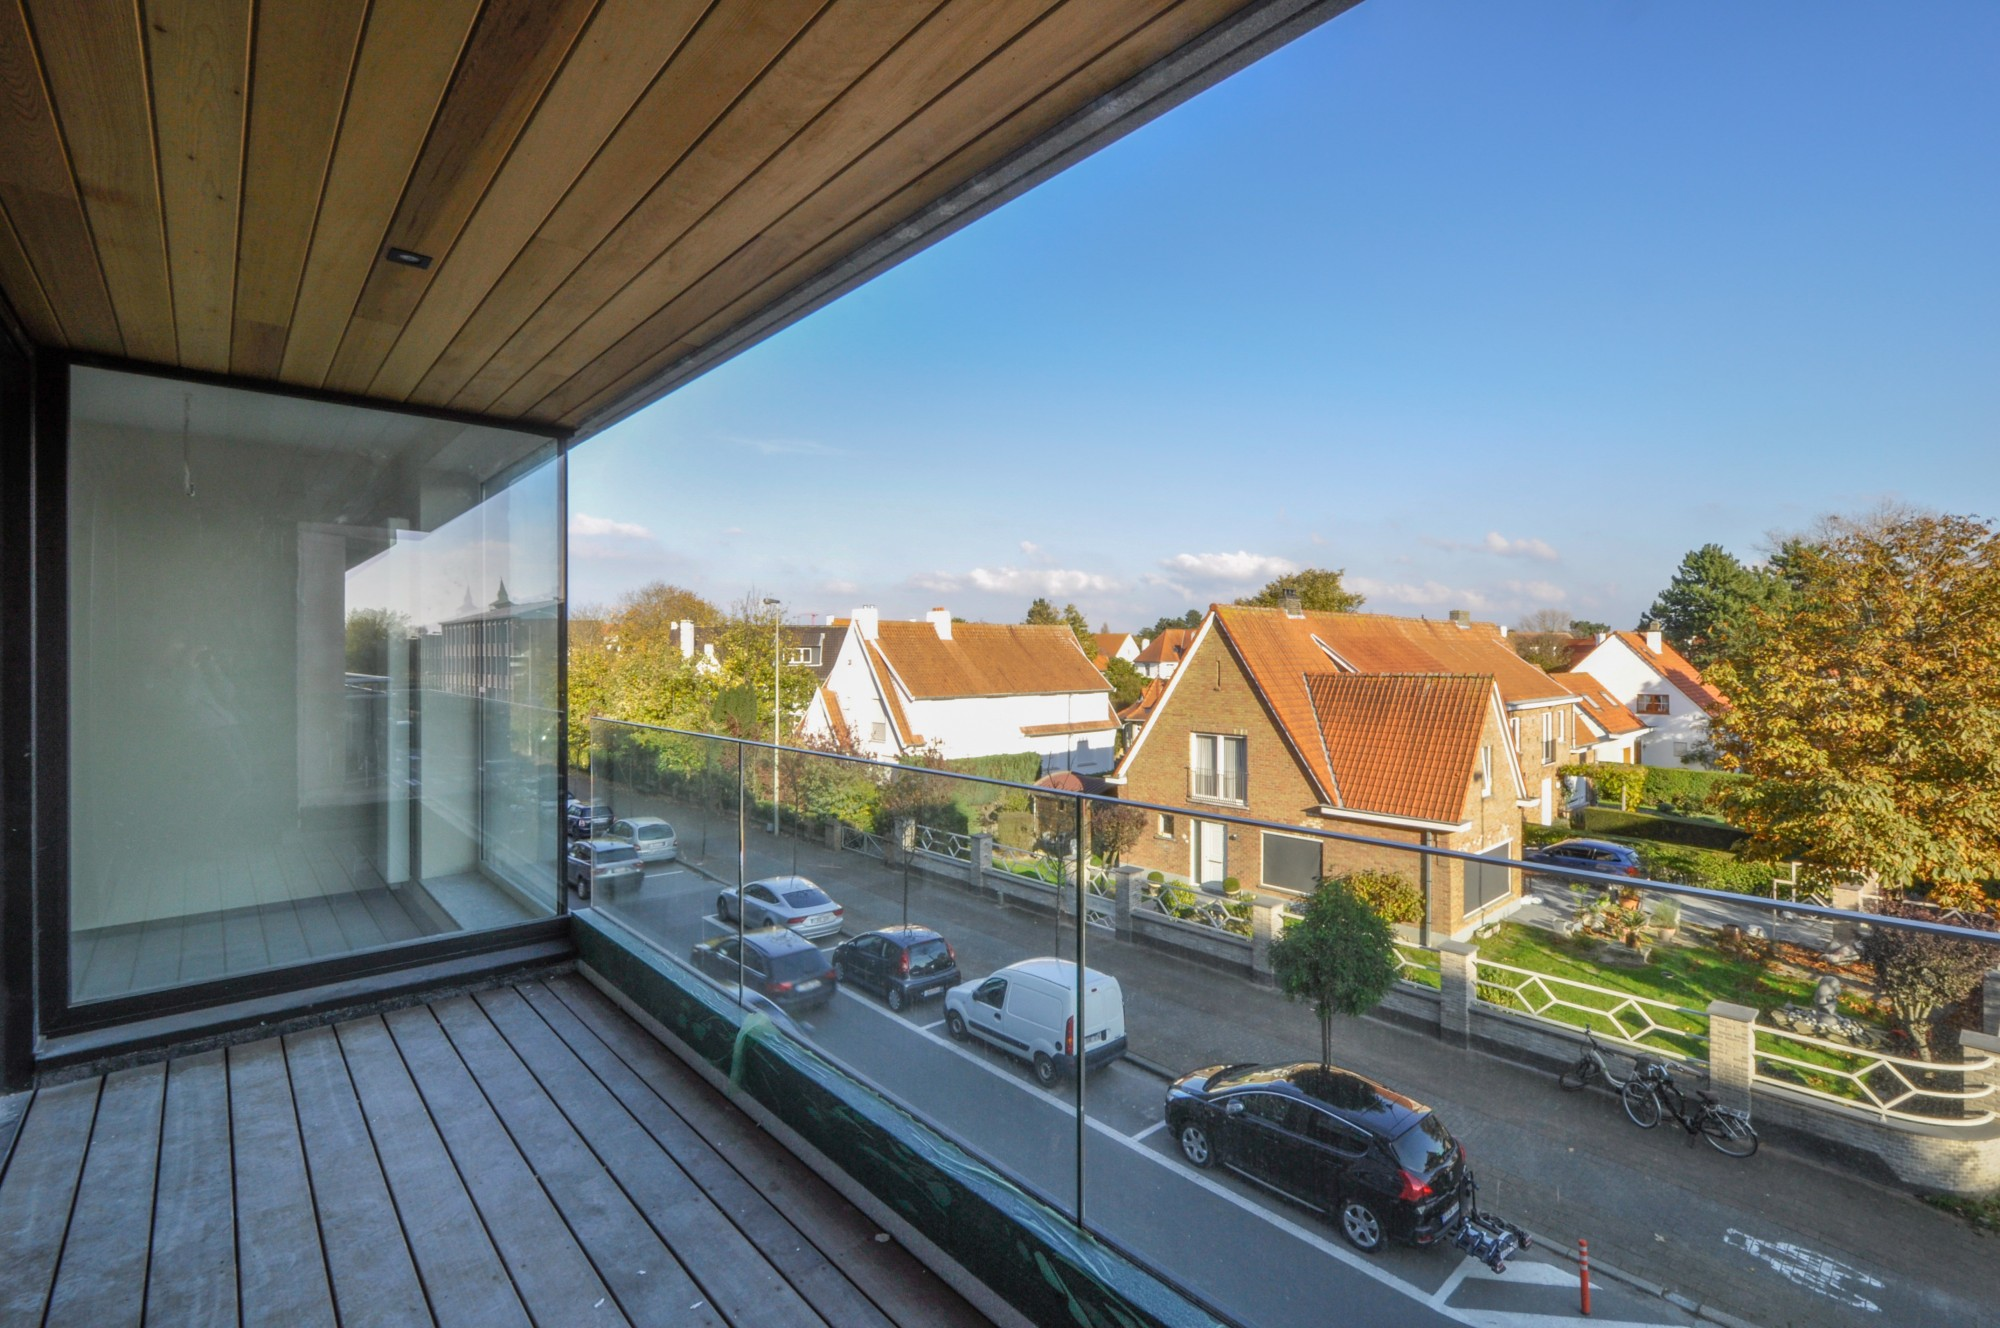 Location Appartement 3 CH Knokke-Heist - Nouvelle construction Pierslaan